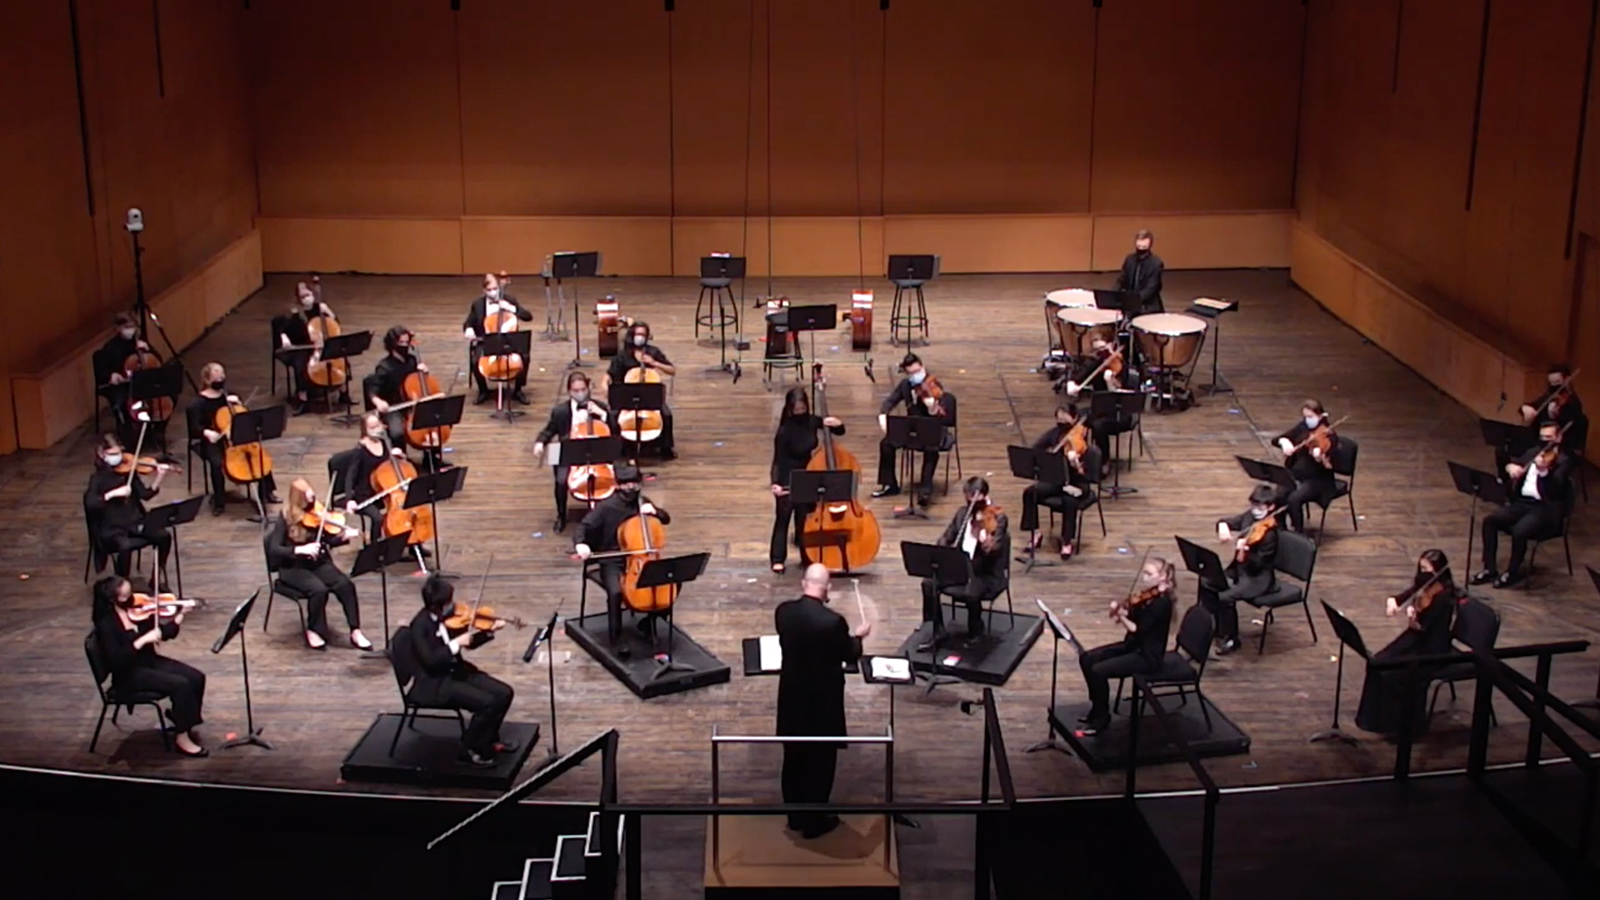 [Bard College Conservatory Orchestra]